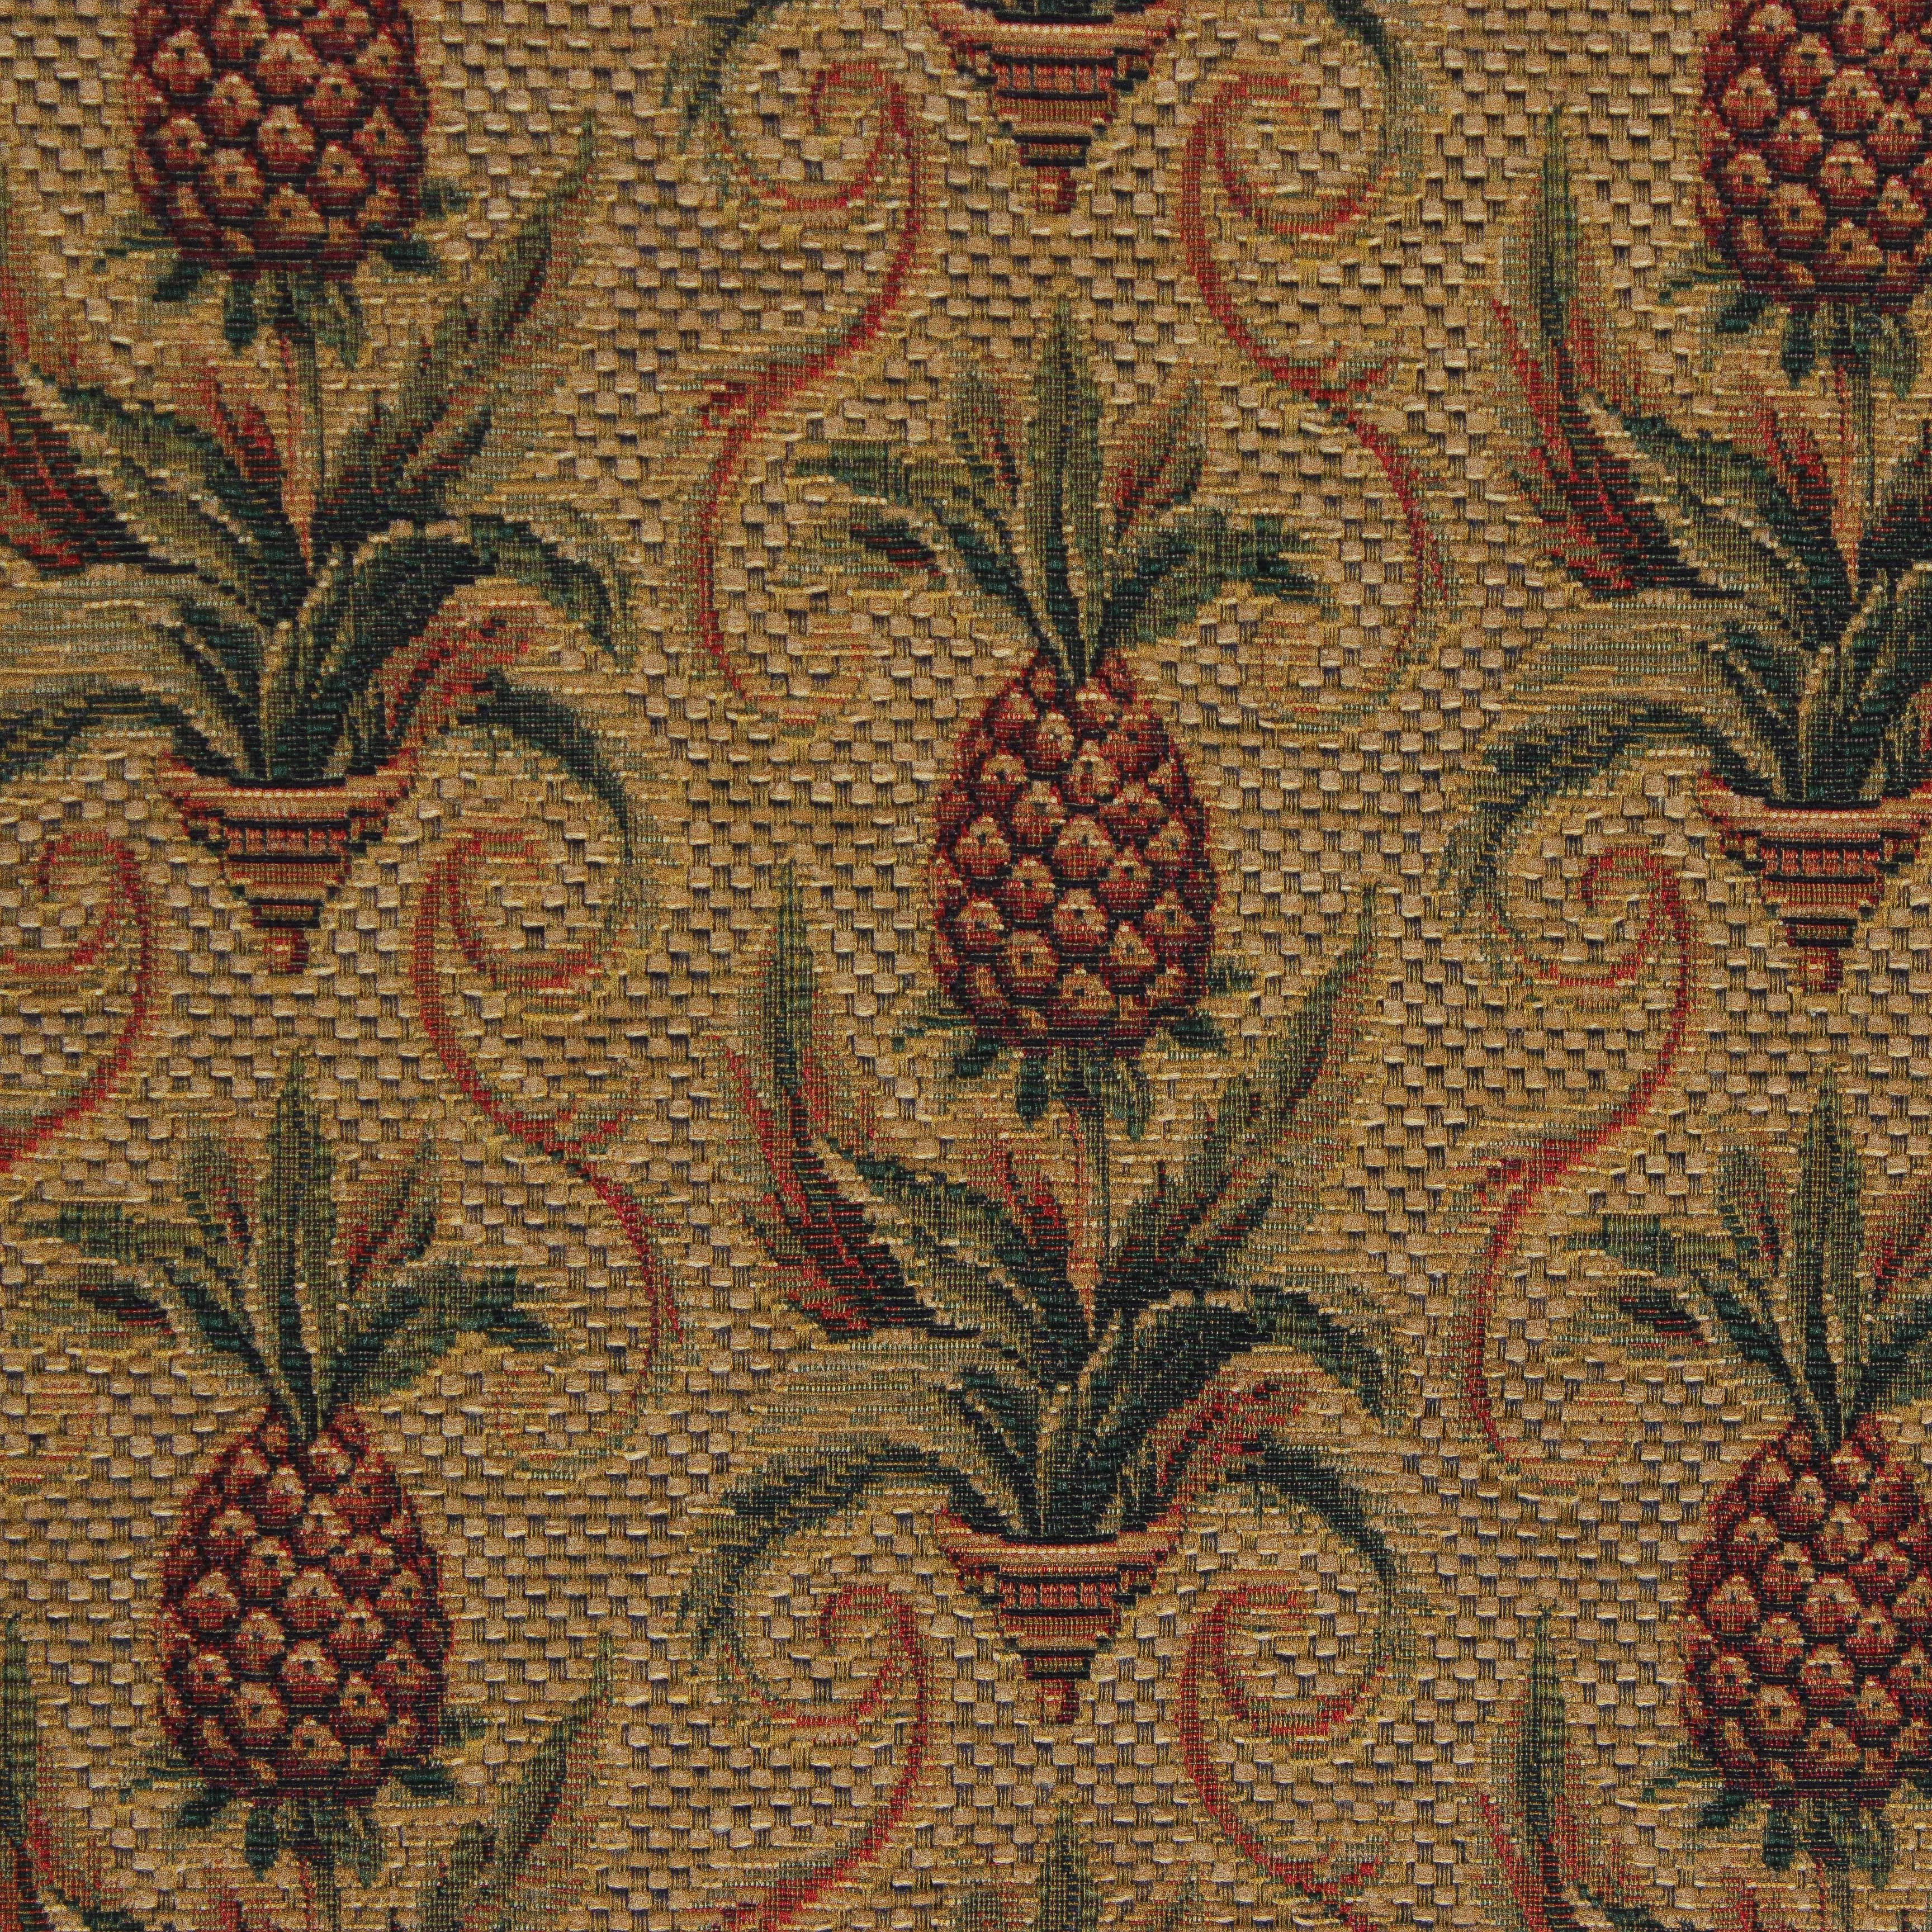 R 4458 Pineapple Gold The Fabric Mill